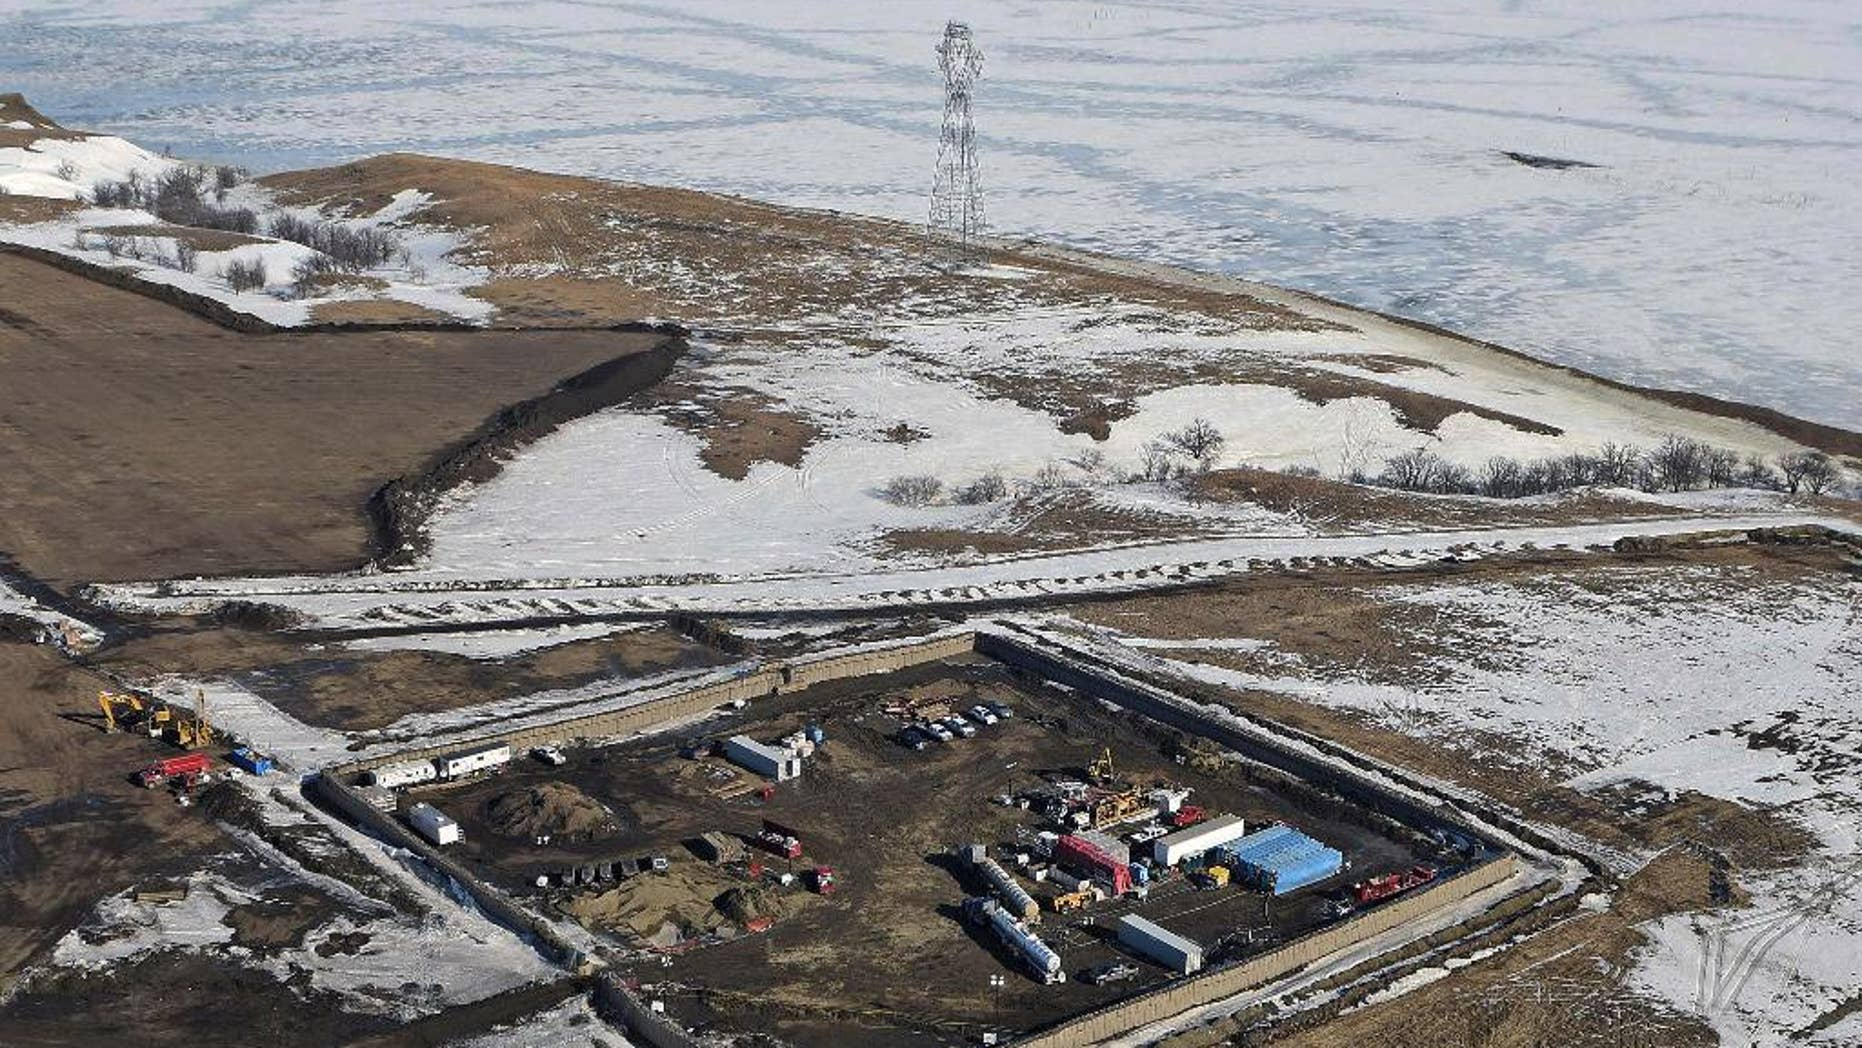 FILE - In this Feb. 13, 2017, aerial file photo shows the site where the final phase of the Dakota Access Pipeline will take place with boring equipment routing the pipeline underground and across Lake Oahe to connect with the existing pipeline in Emmons County near Cannon Ball, N.D. Sioux tribes suing to stop the Dakota Access pipeline want a federal judge to head off the imminent flow of oil. Judge James Boasberg on March 7, 2017, rejected the request of the Standing Rock and Cheyenne River Sioux to stop construction of the final segment of the pipeline that would move oil from North Dakota to Illinois. (Tom Stromme/The Bismarck Tribune via AP, File)